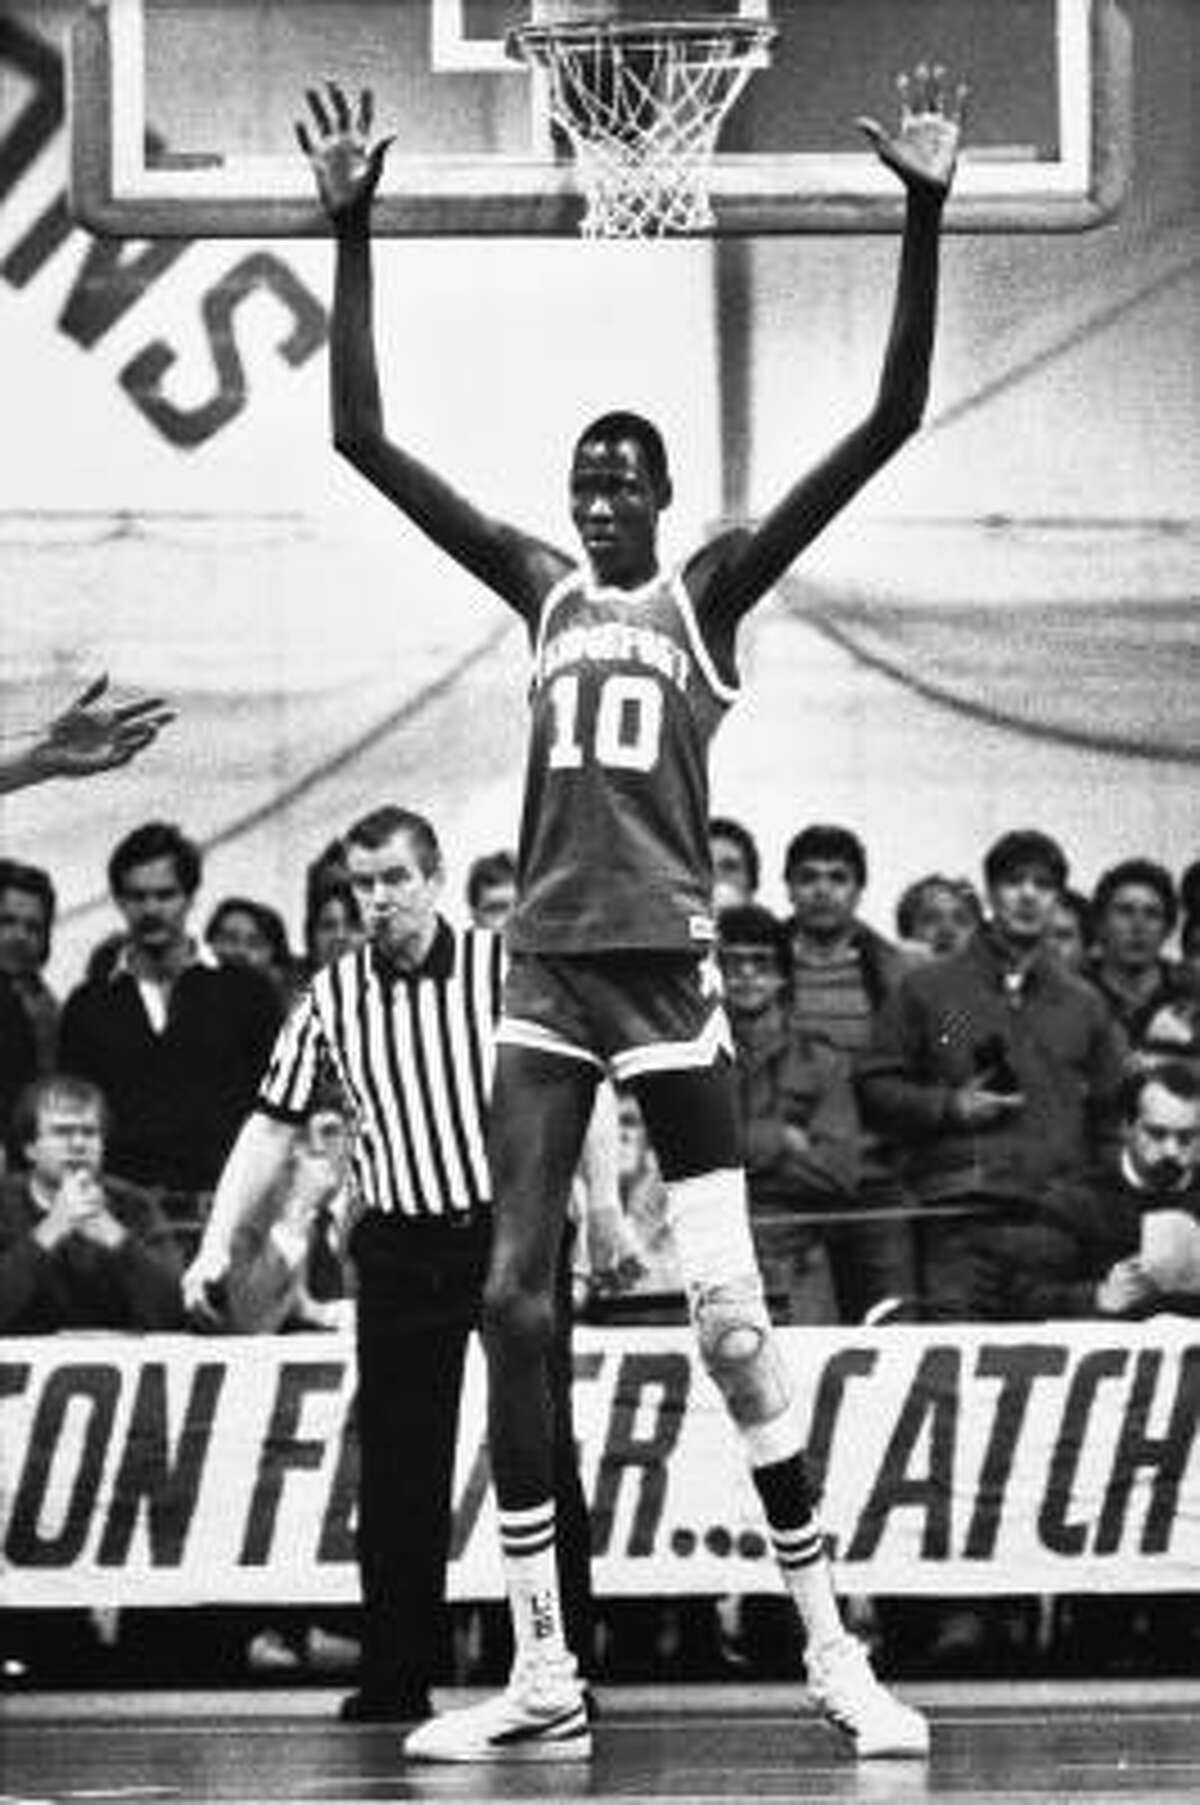 Manute Bol defends the basket for the University of Bridgeport on Jan. 11, 1985. A few months later, he was picked up by the Washington Bullets as the 32nd pick in that year's NBA draft.